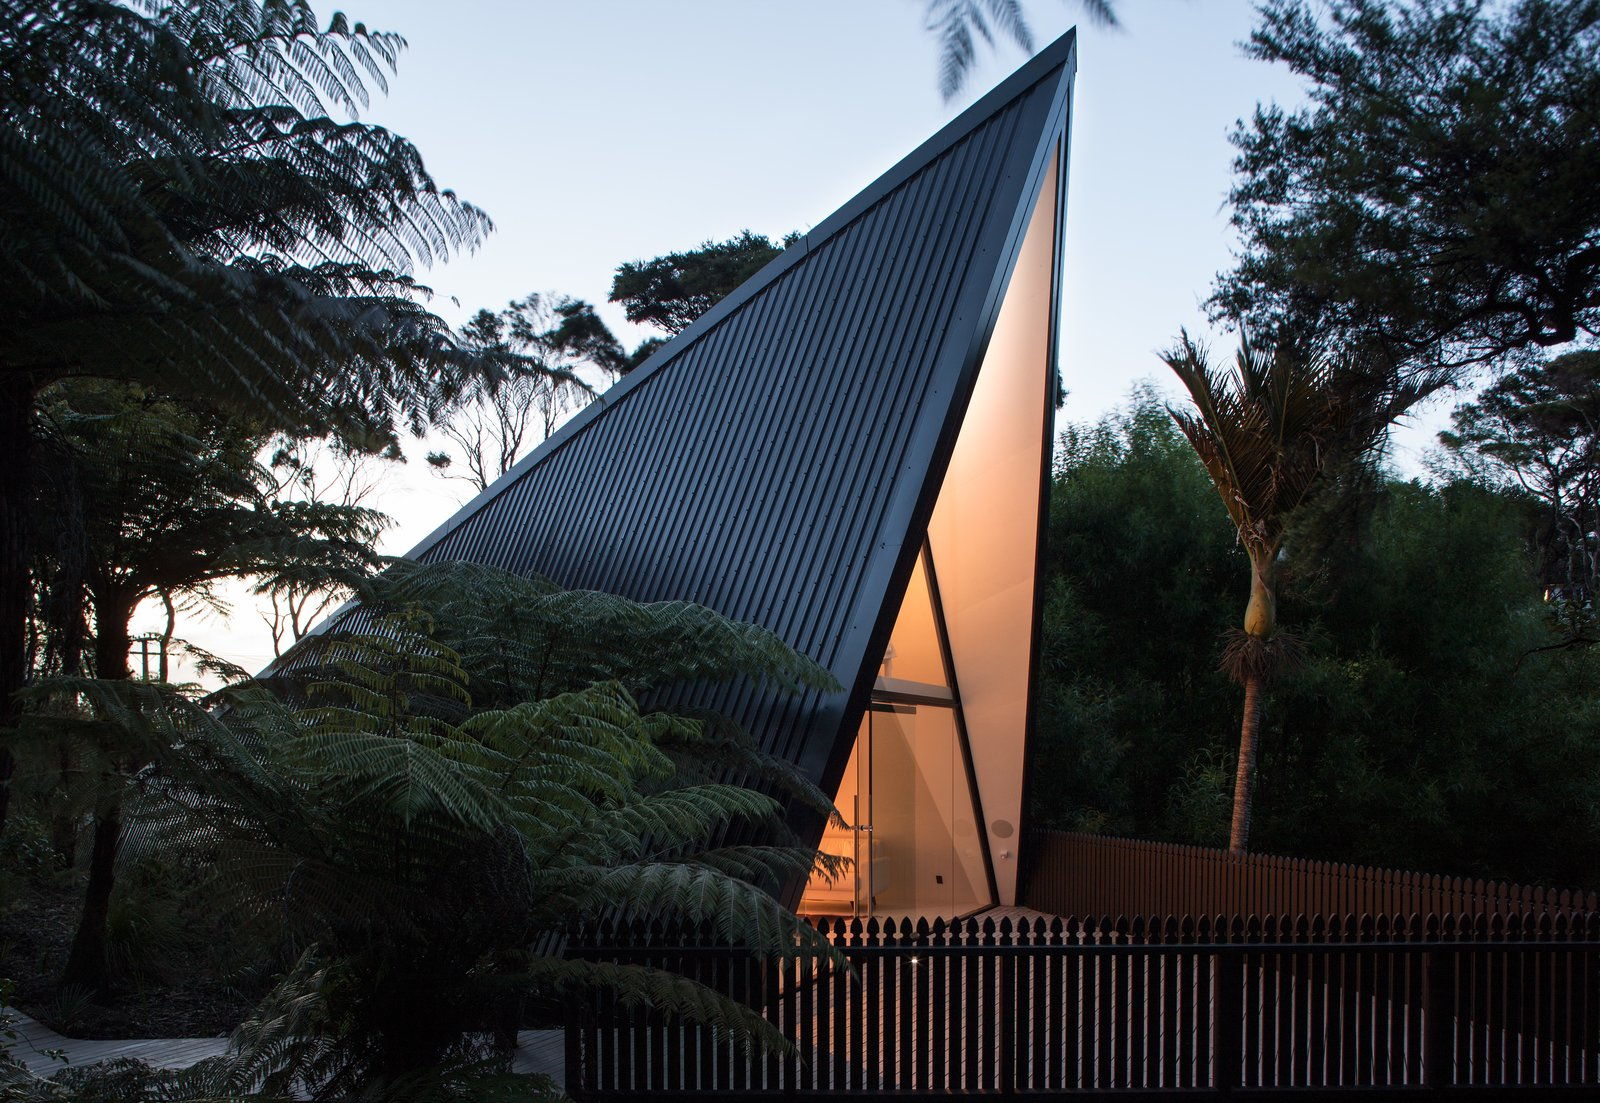 Trees, Small, Wood, Front Yard, Vertical, Exterior, House, and Metal The front deck was designed to  Best Exterior Vertical Photos from Stay in a Tent-Inspired A-Frame Cabin in the New Zealand Rain Forest